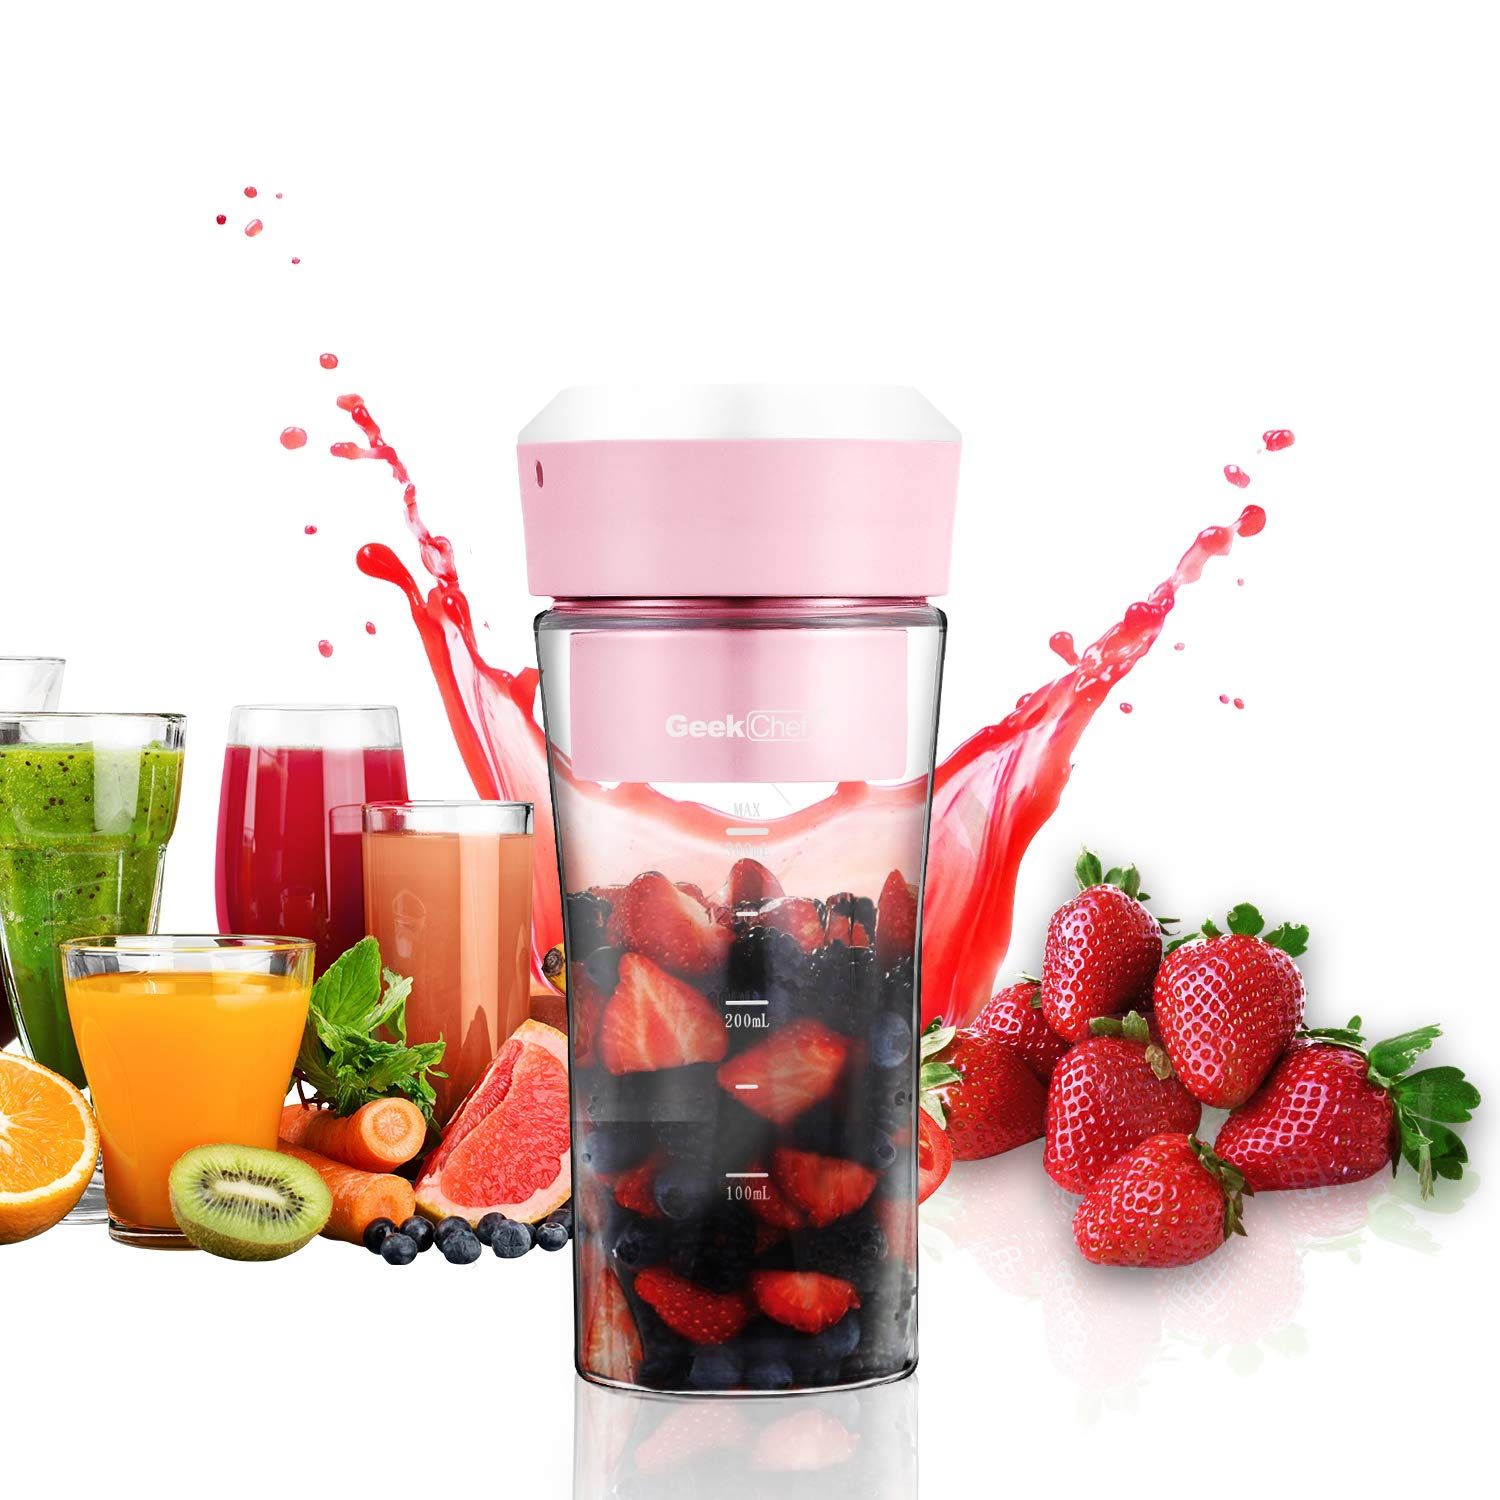 Portable Blender, Geek Chef USB Fruit Juicer Mini Personal Blender Small Blender, Shake and Smoothie Rechargeable Mixer Waterproof Juicer Cup, Mixing Machine BPA Free PB-P01 by Geek Chef